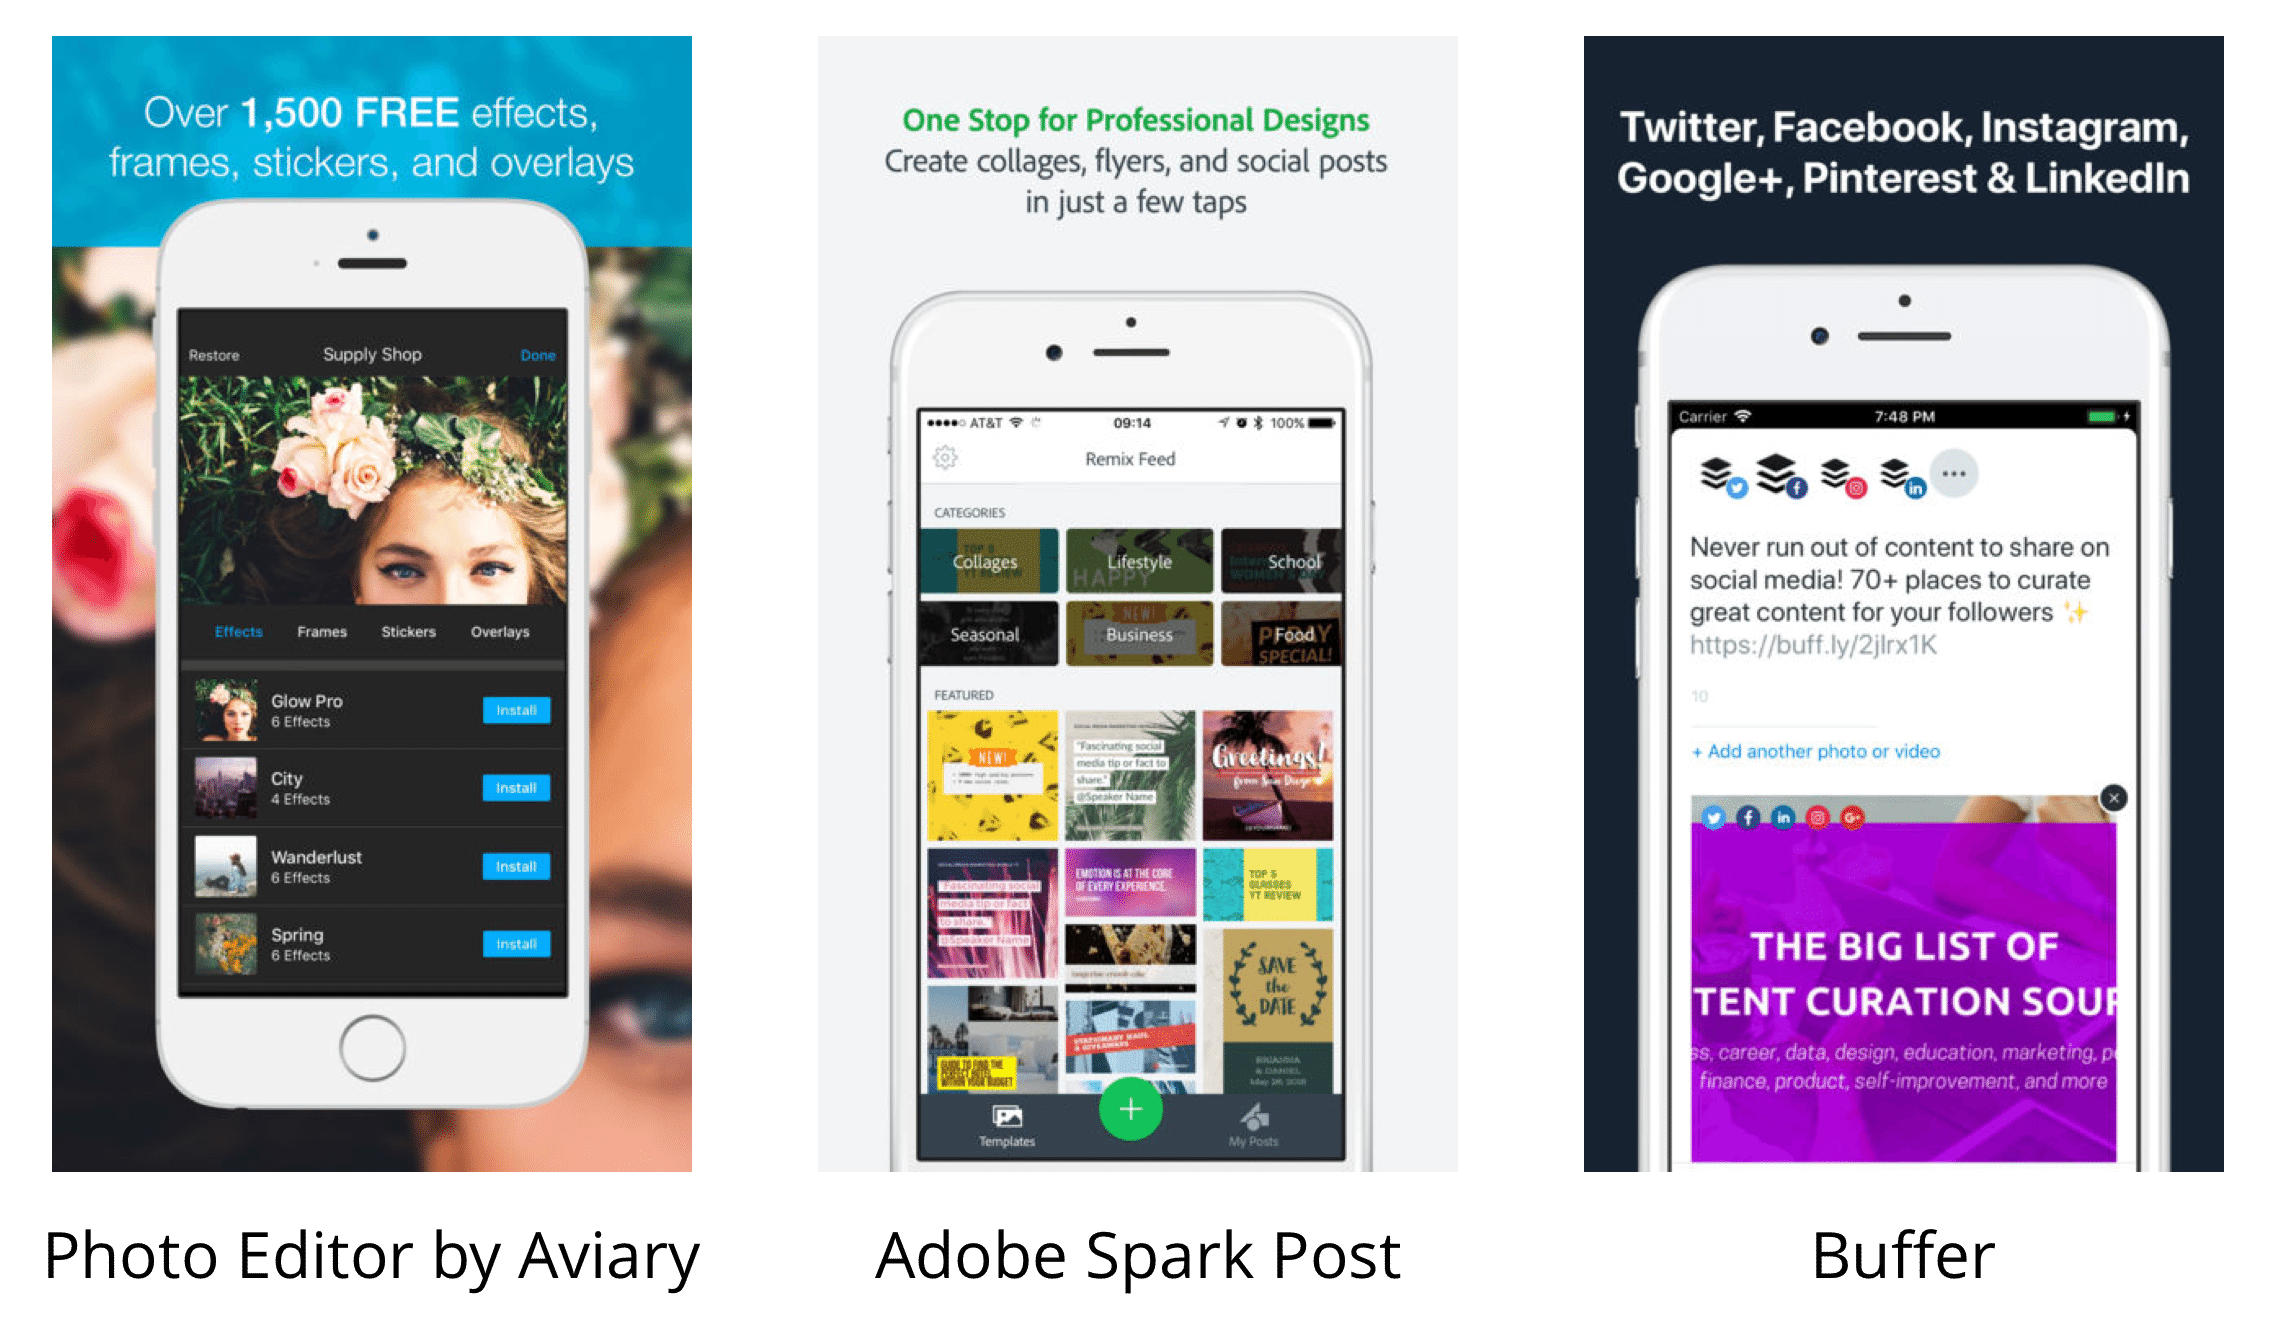 Instagram tools: Photo Editor by Aviary, Adobe Spark Post, and Buffer